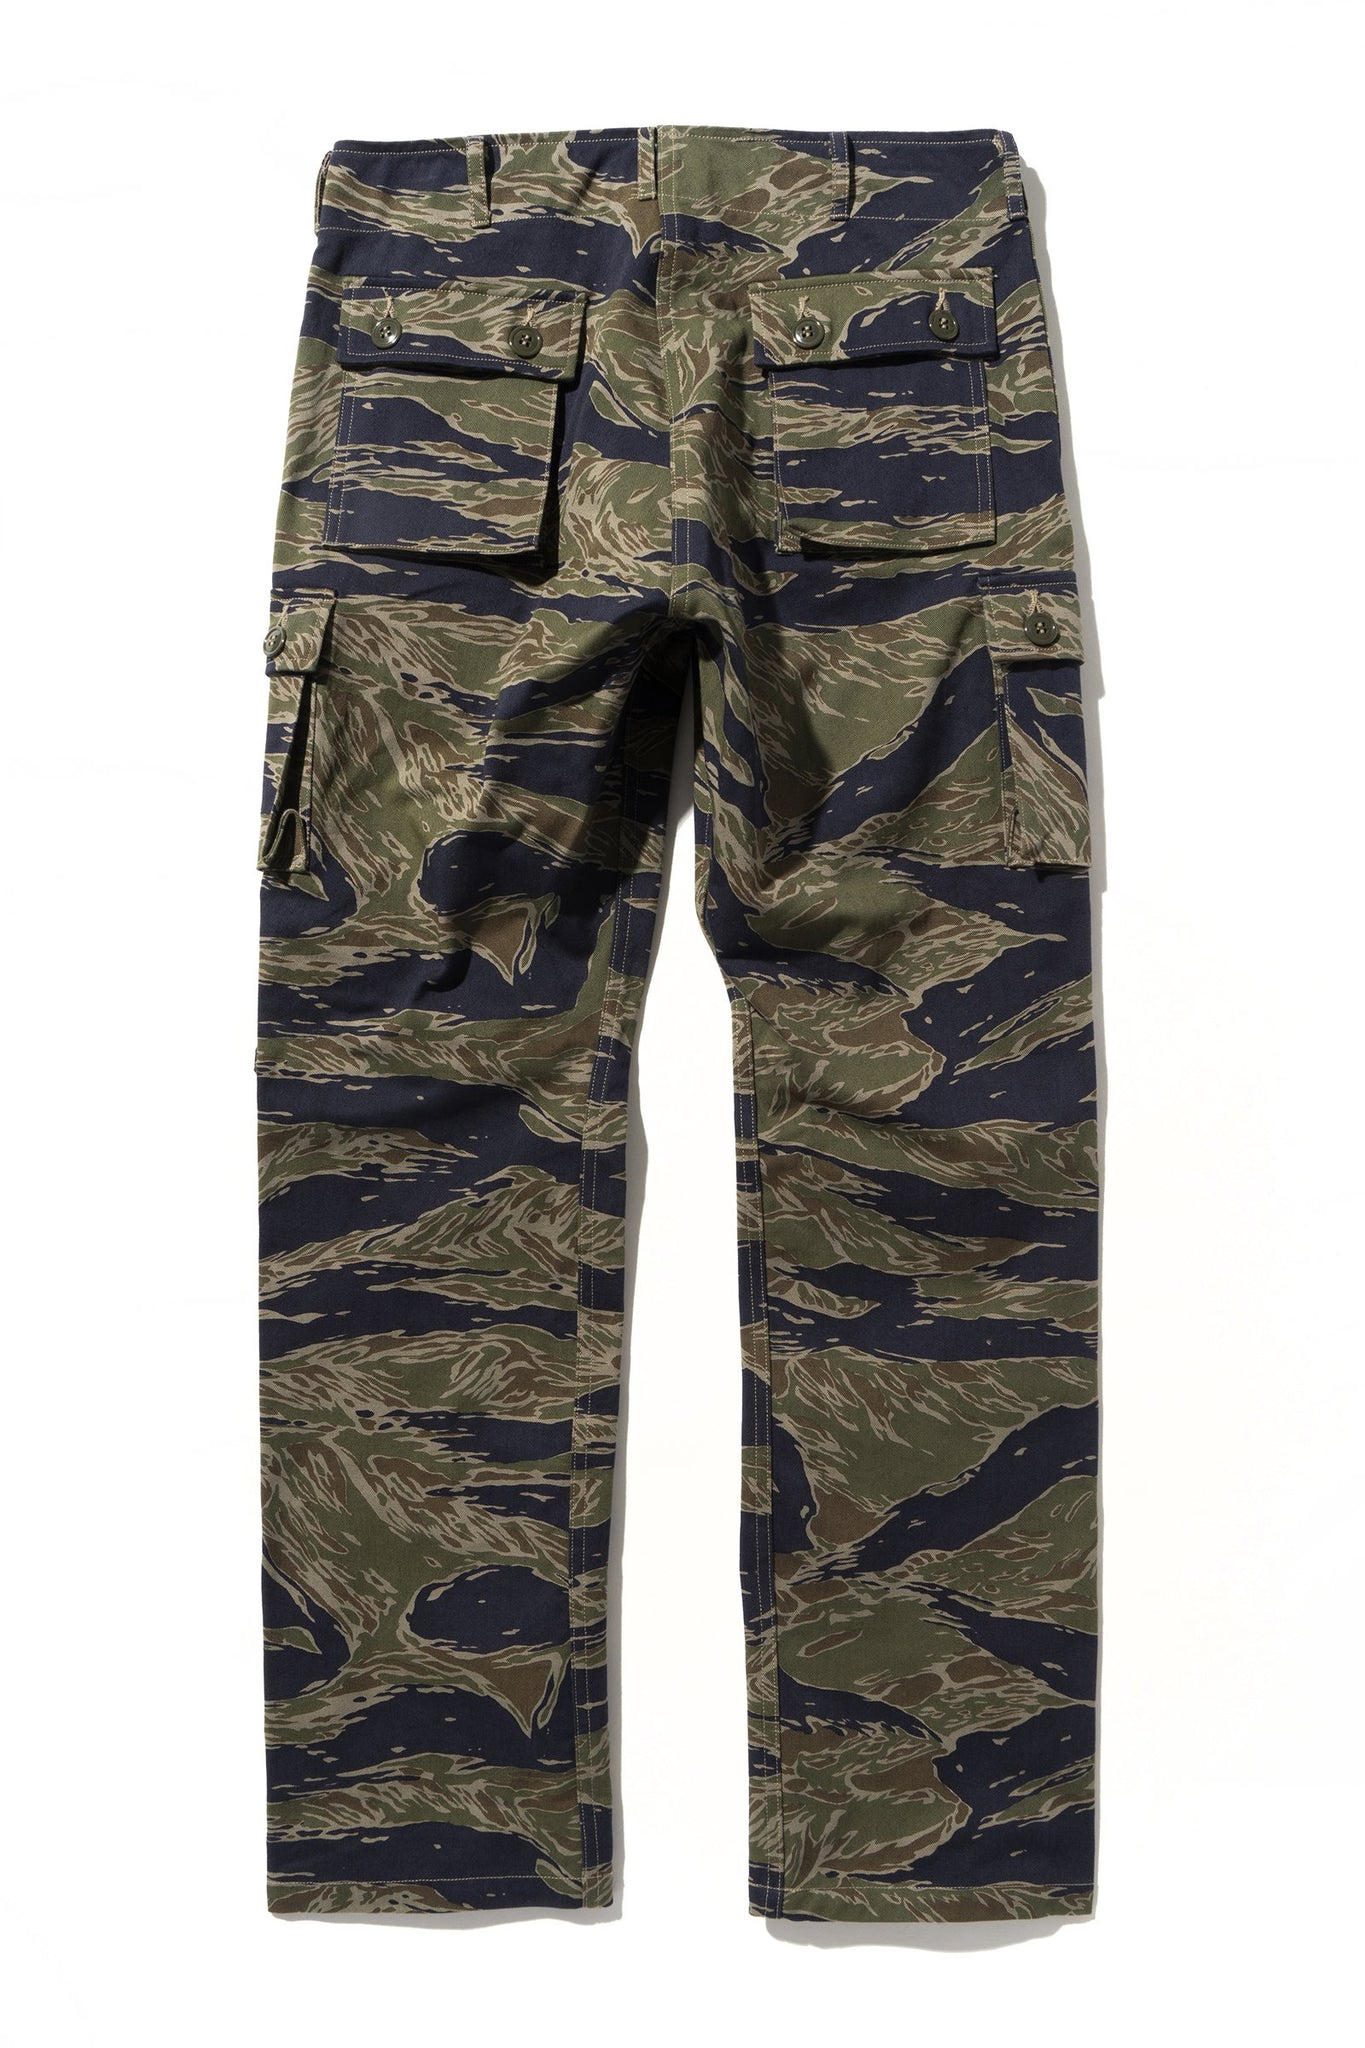 TIGER CAMOUFLAGE TROUSERS / TADPOLE